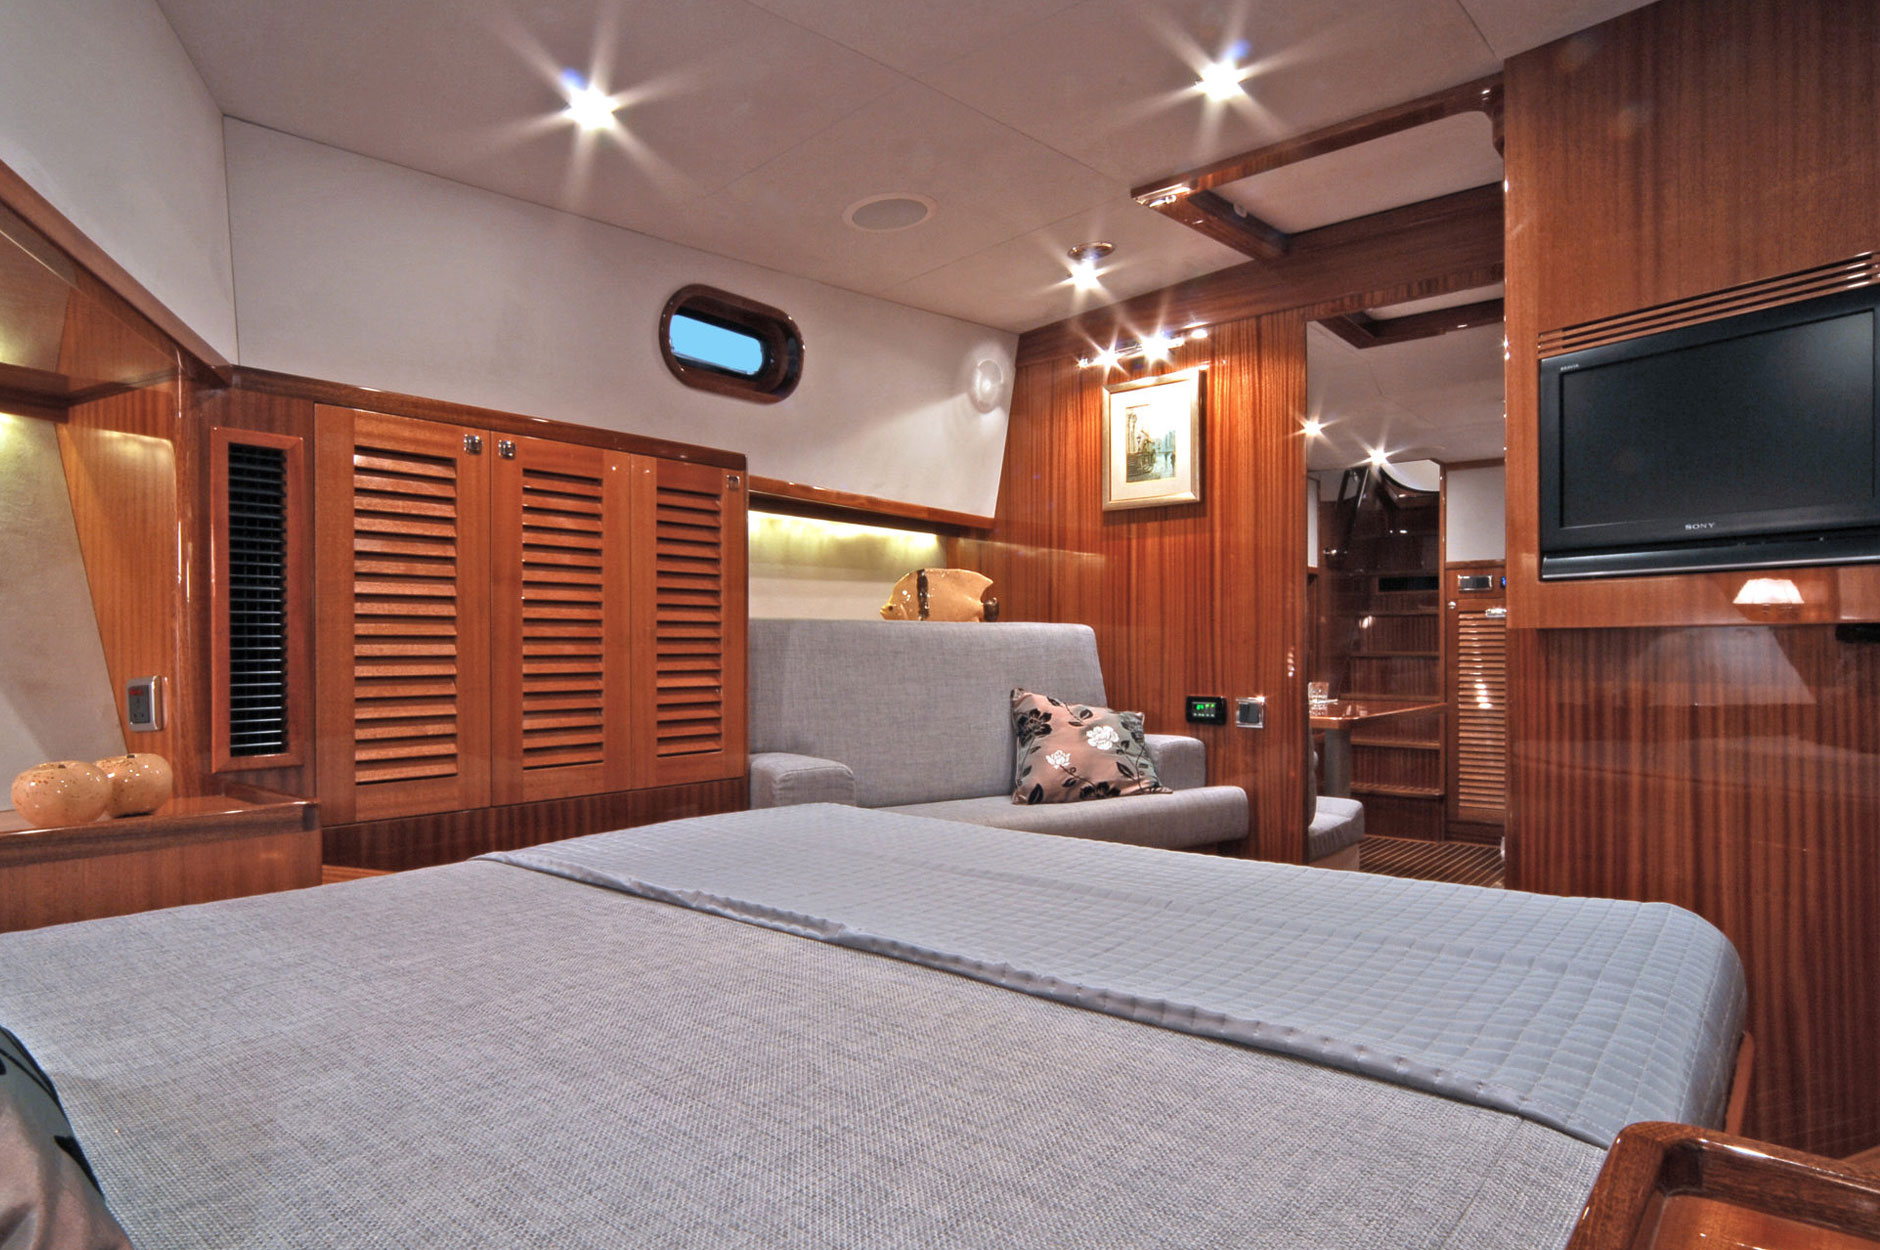 Elegant, yet practical owner's cabin to relax and take a nap on the VIP Soc Docksta,